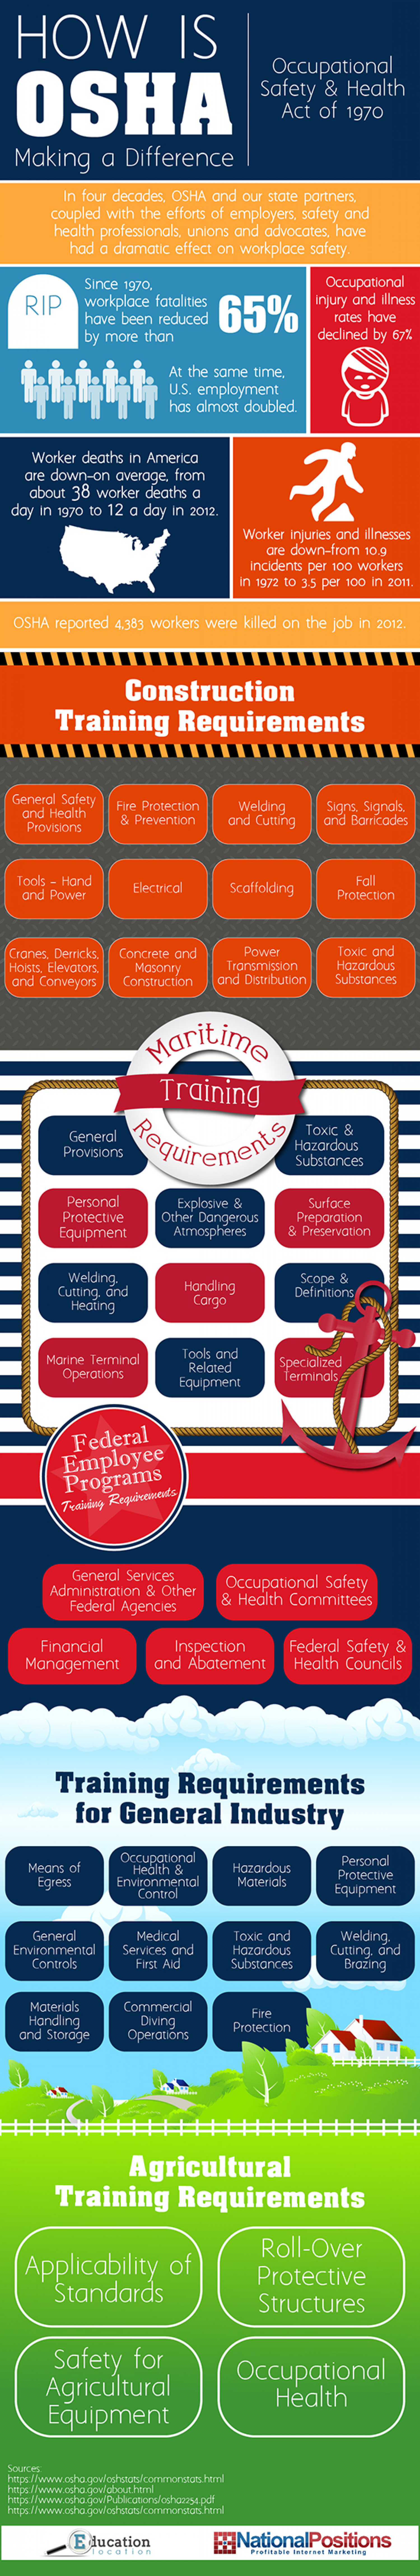 How Is Osha Making A Difference Infographic